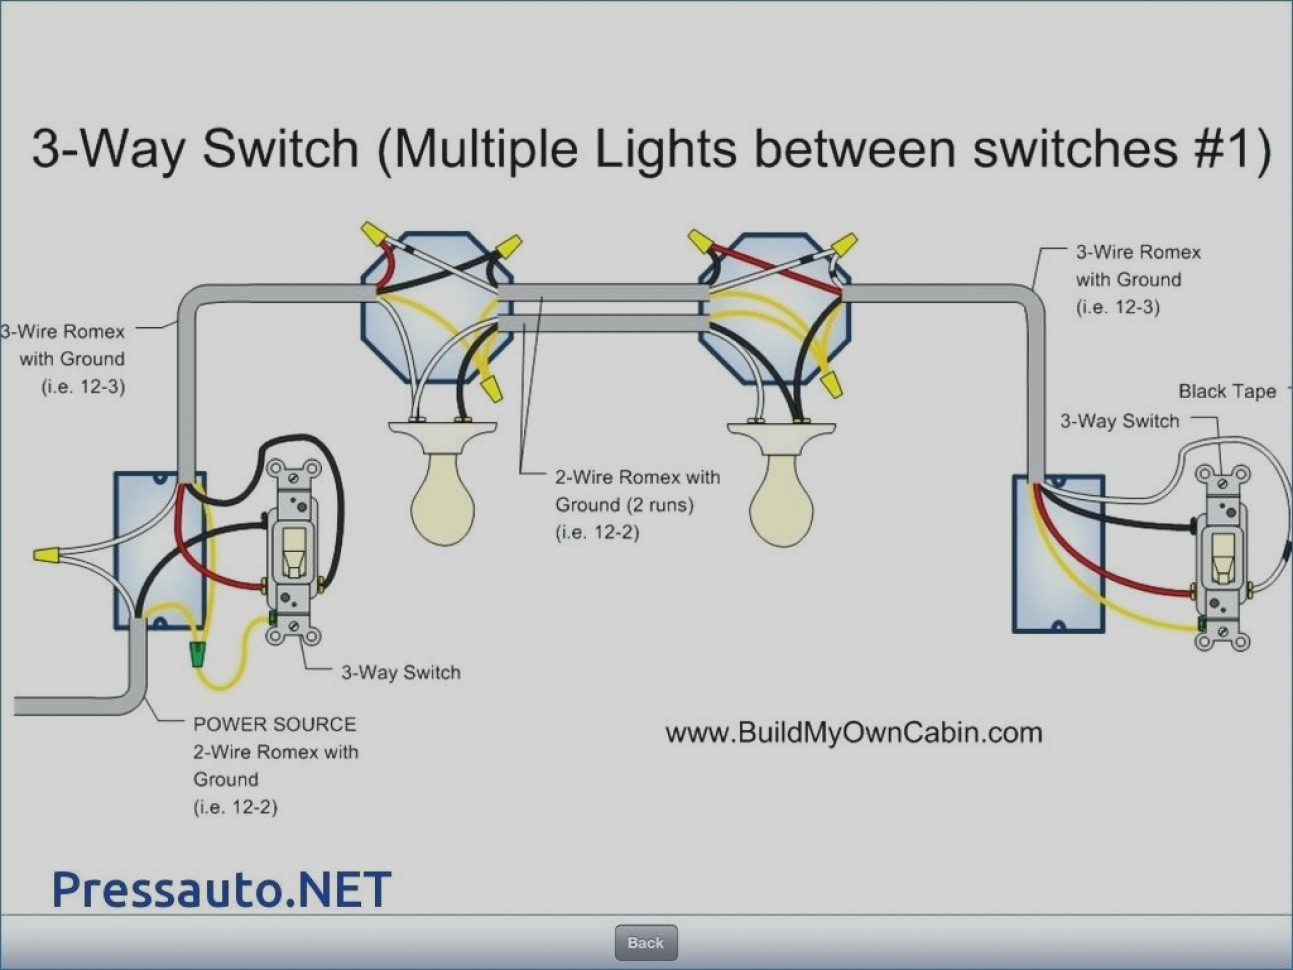 Wiring Diagram For 3 Way Switch With Multiple Lights - V Star 950 Wiring  Diagram for Wiring Diagram SchematicsWiring Diagram Schematics